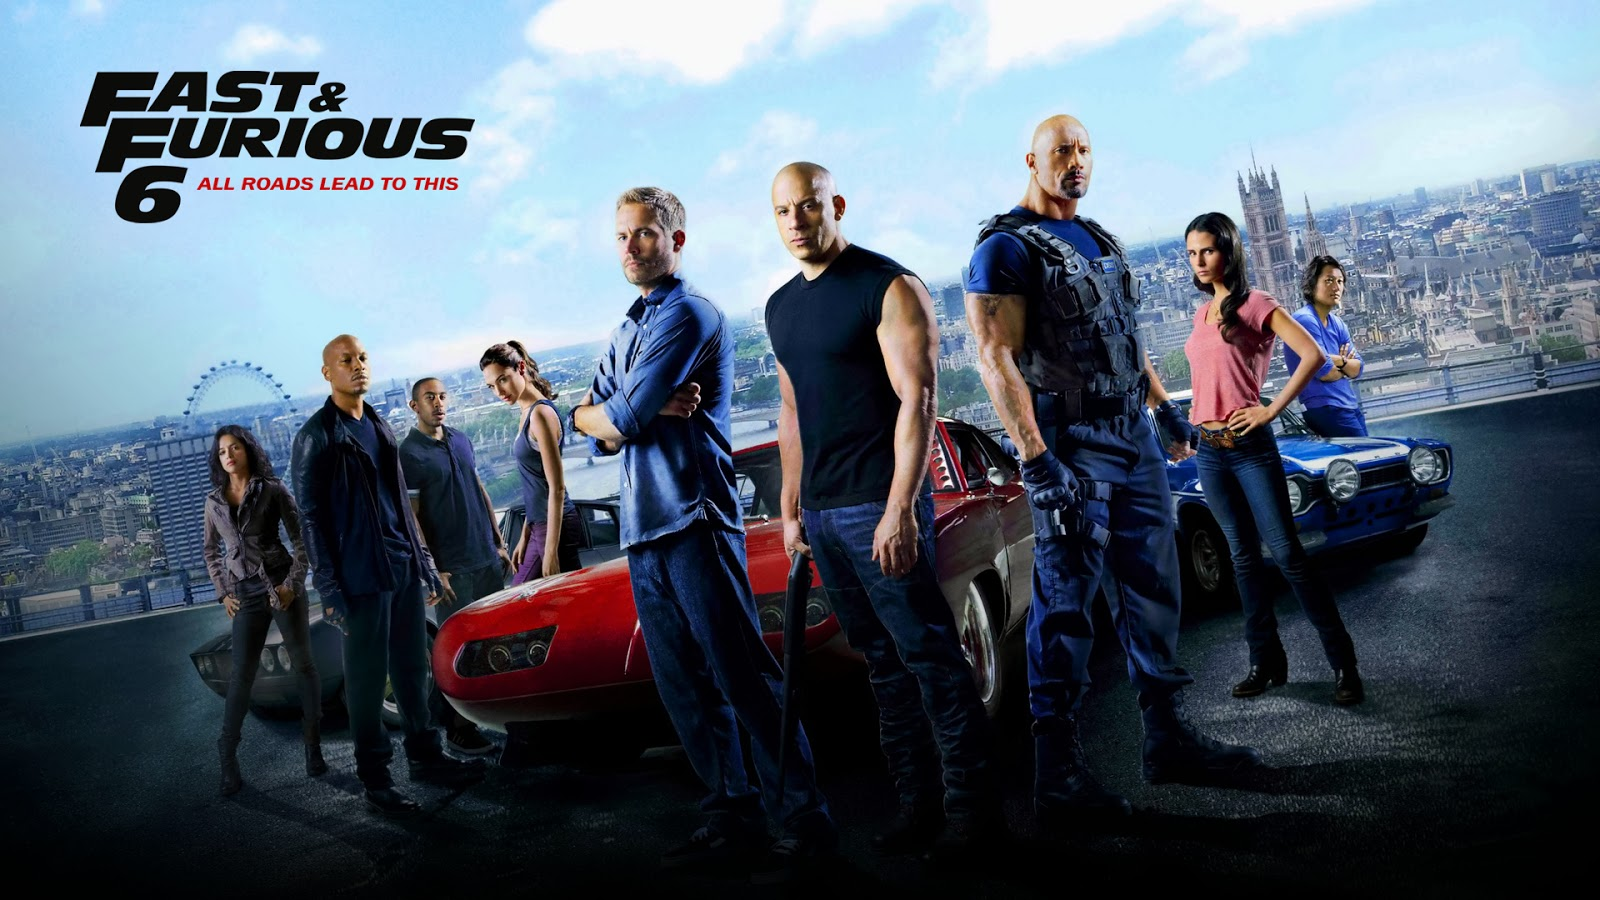 Fast And Furious 6 Cars Hd Wallpaper Stg Auto Group The Fast And The Furious Story